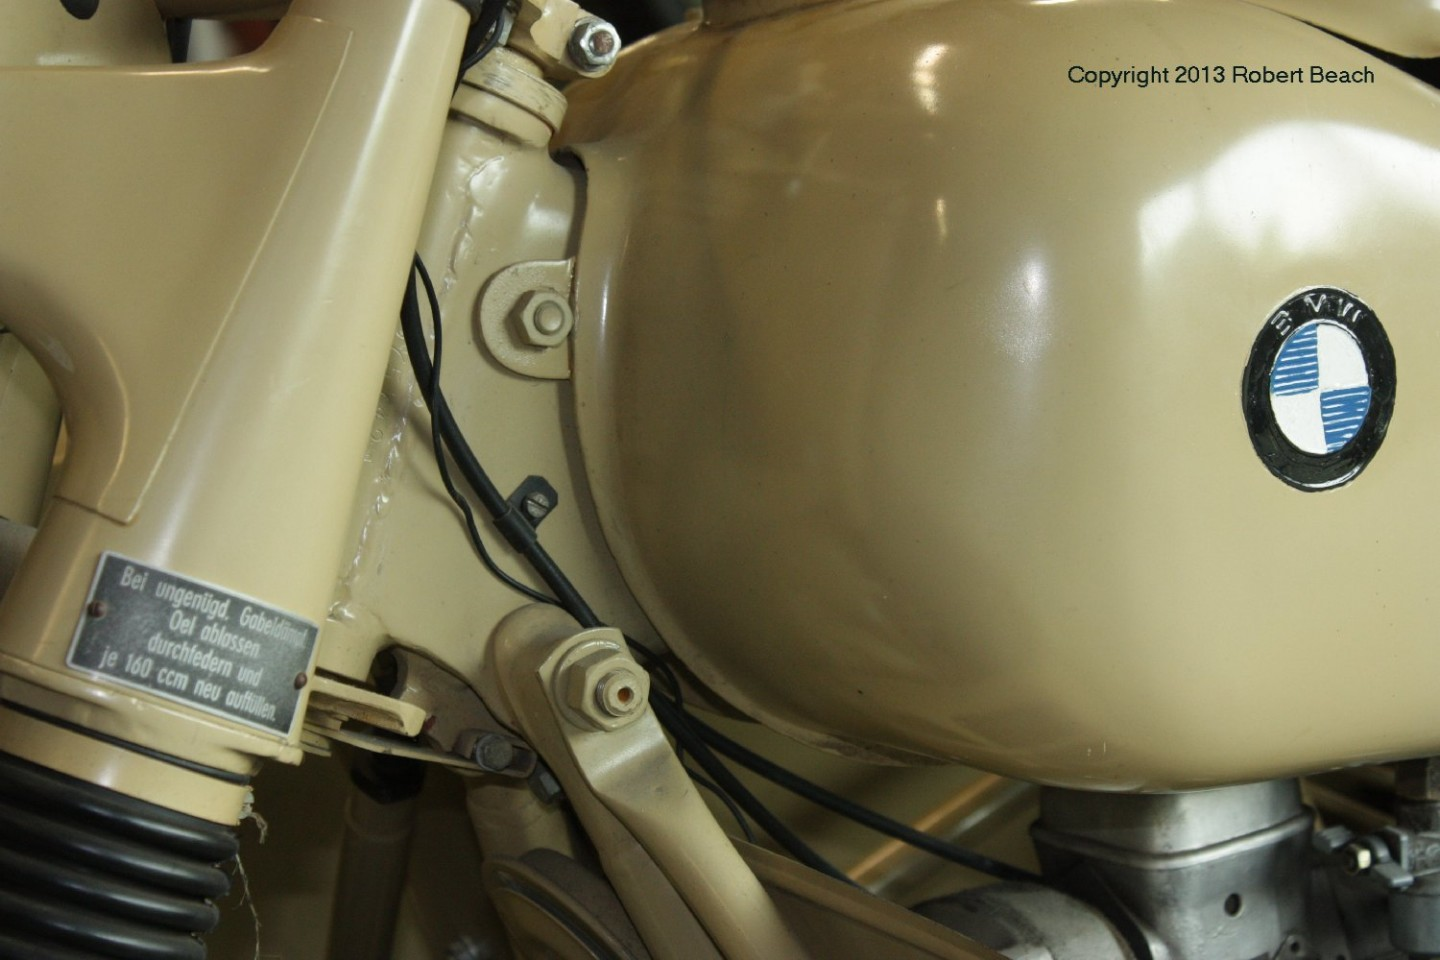 BMW_Mtrcycle_sidecar_tank n fork details_frm rt